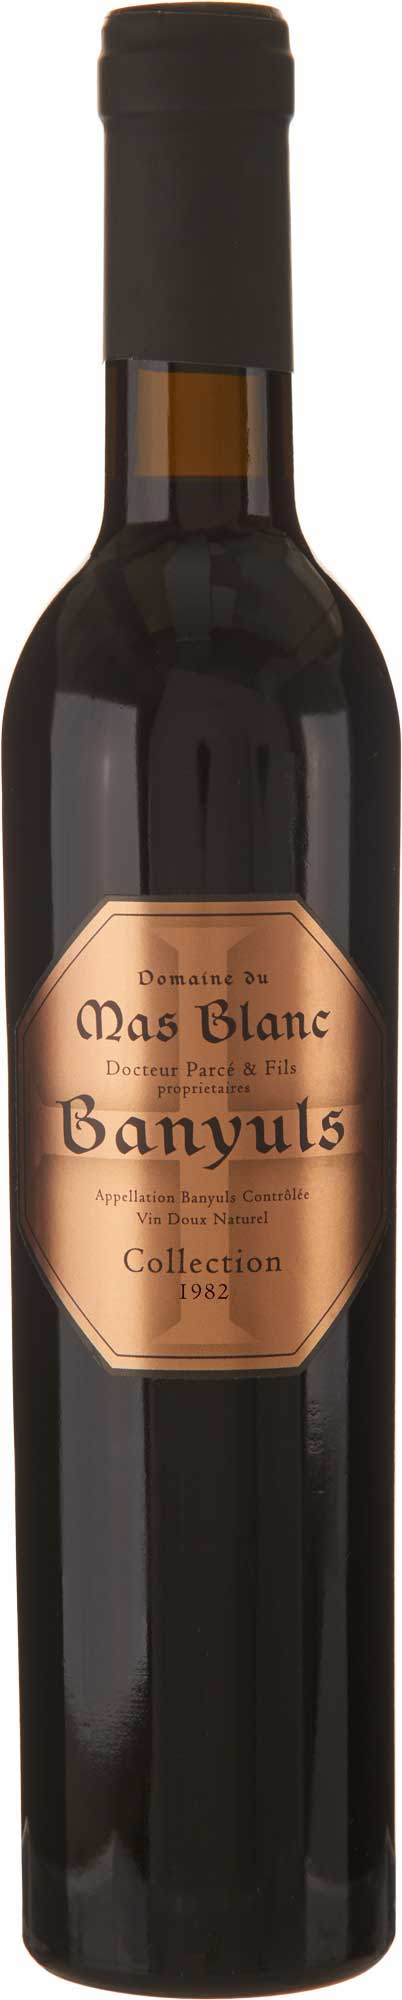 Domaine du Mas Blanc Banyuls 'Collection' 1982